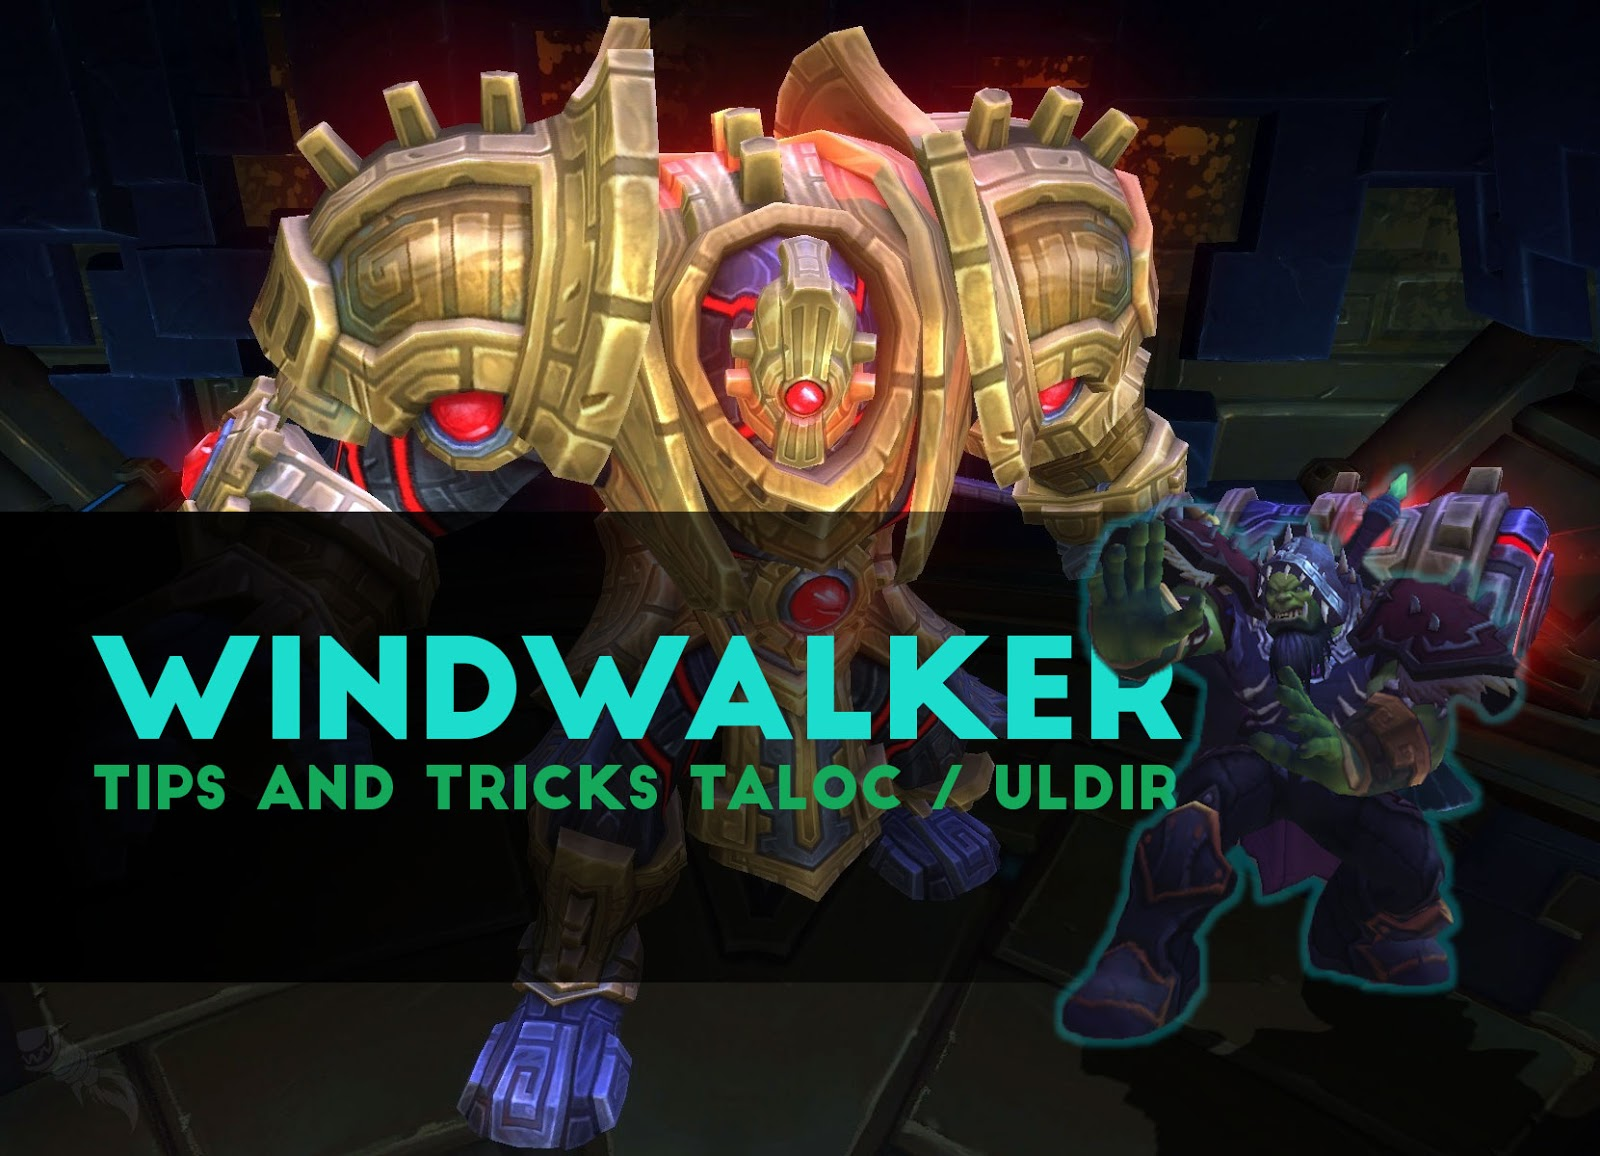 WindWalker Tips and Tricks TALOC / ULDIR - Patch 8.0